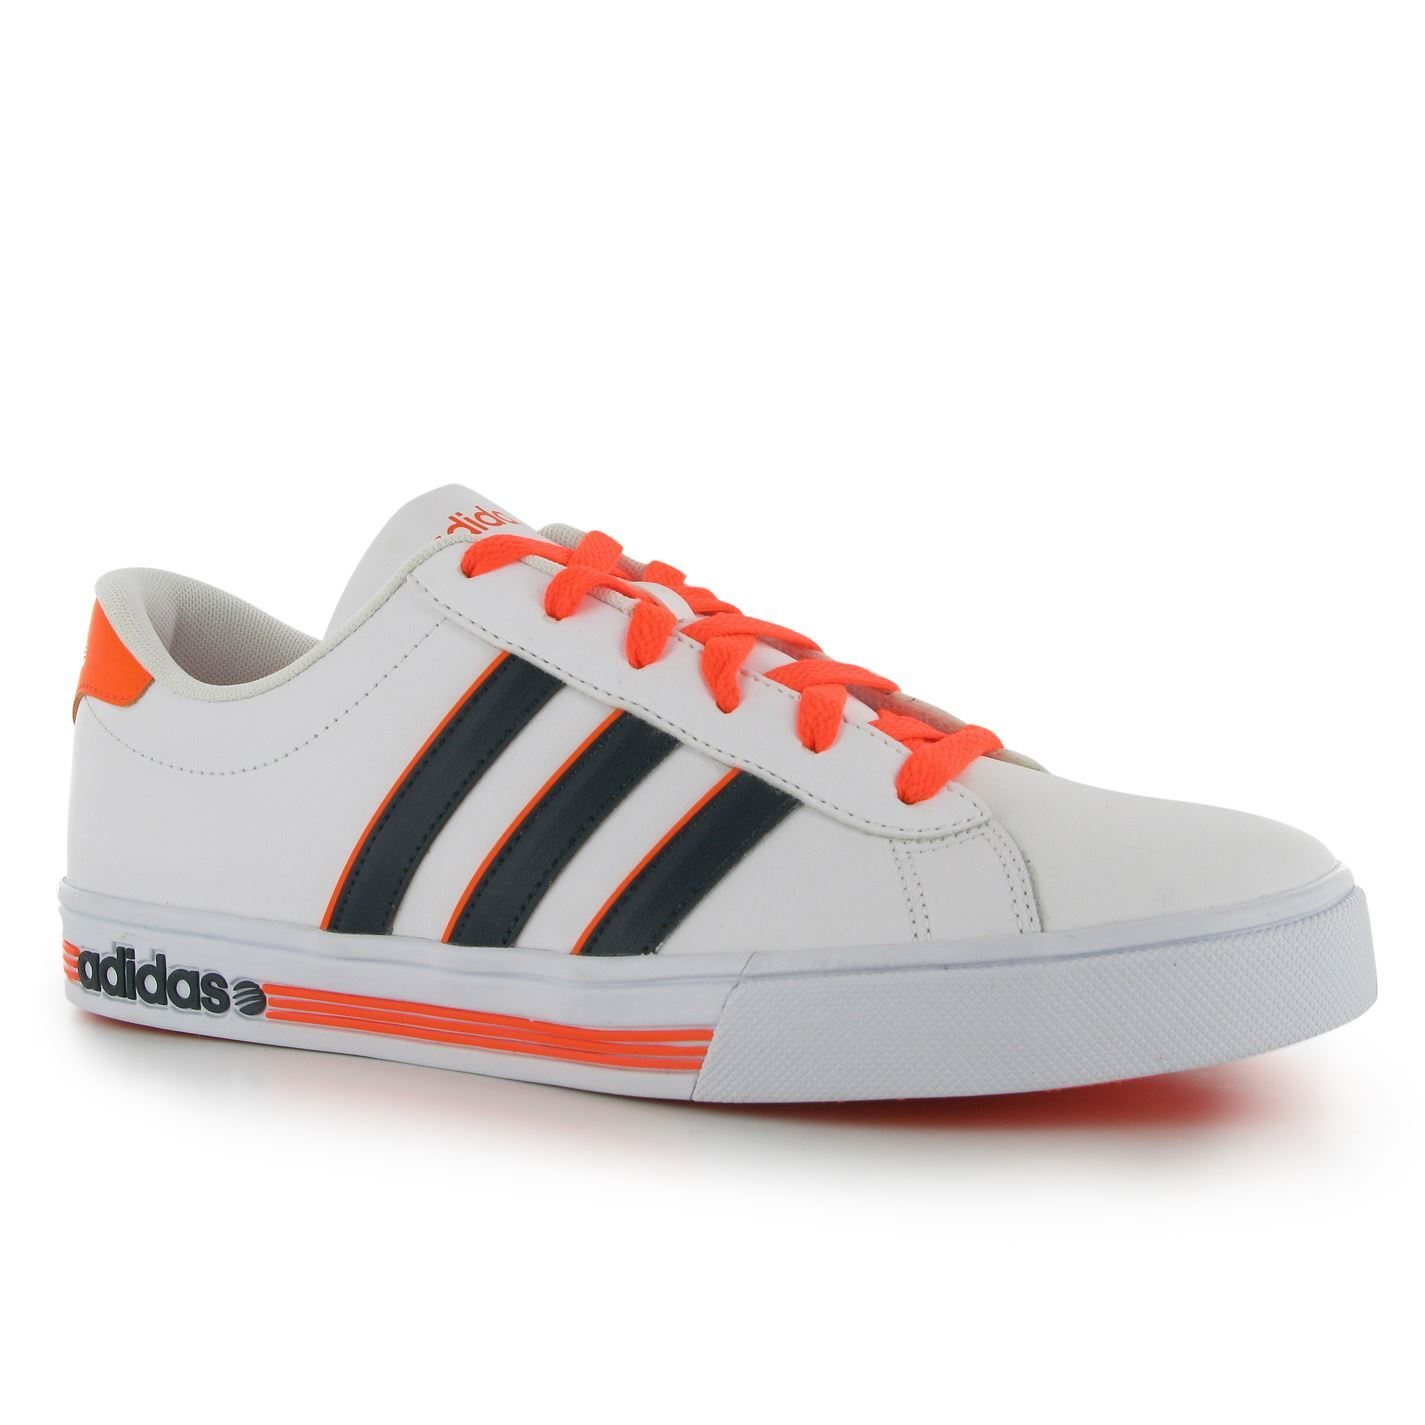 Adidas Originals Shoes Sports Direct